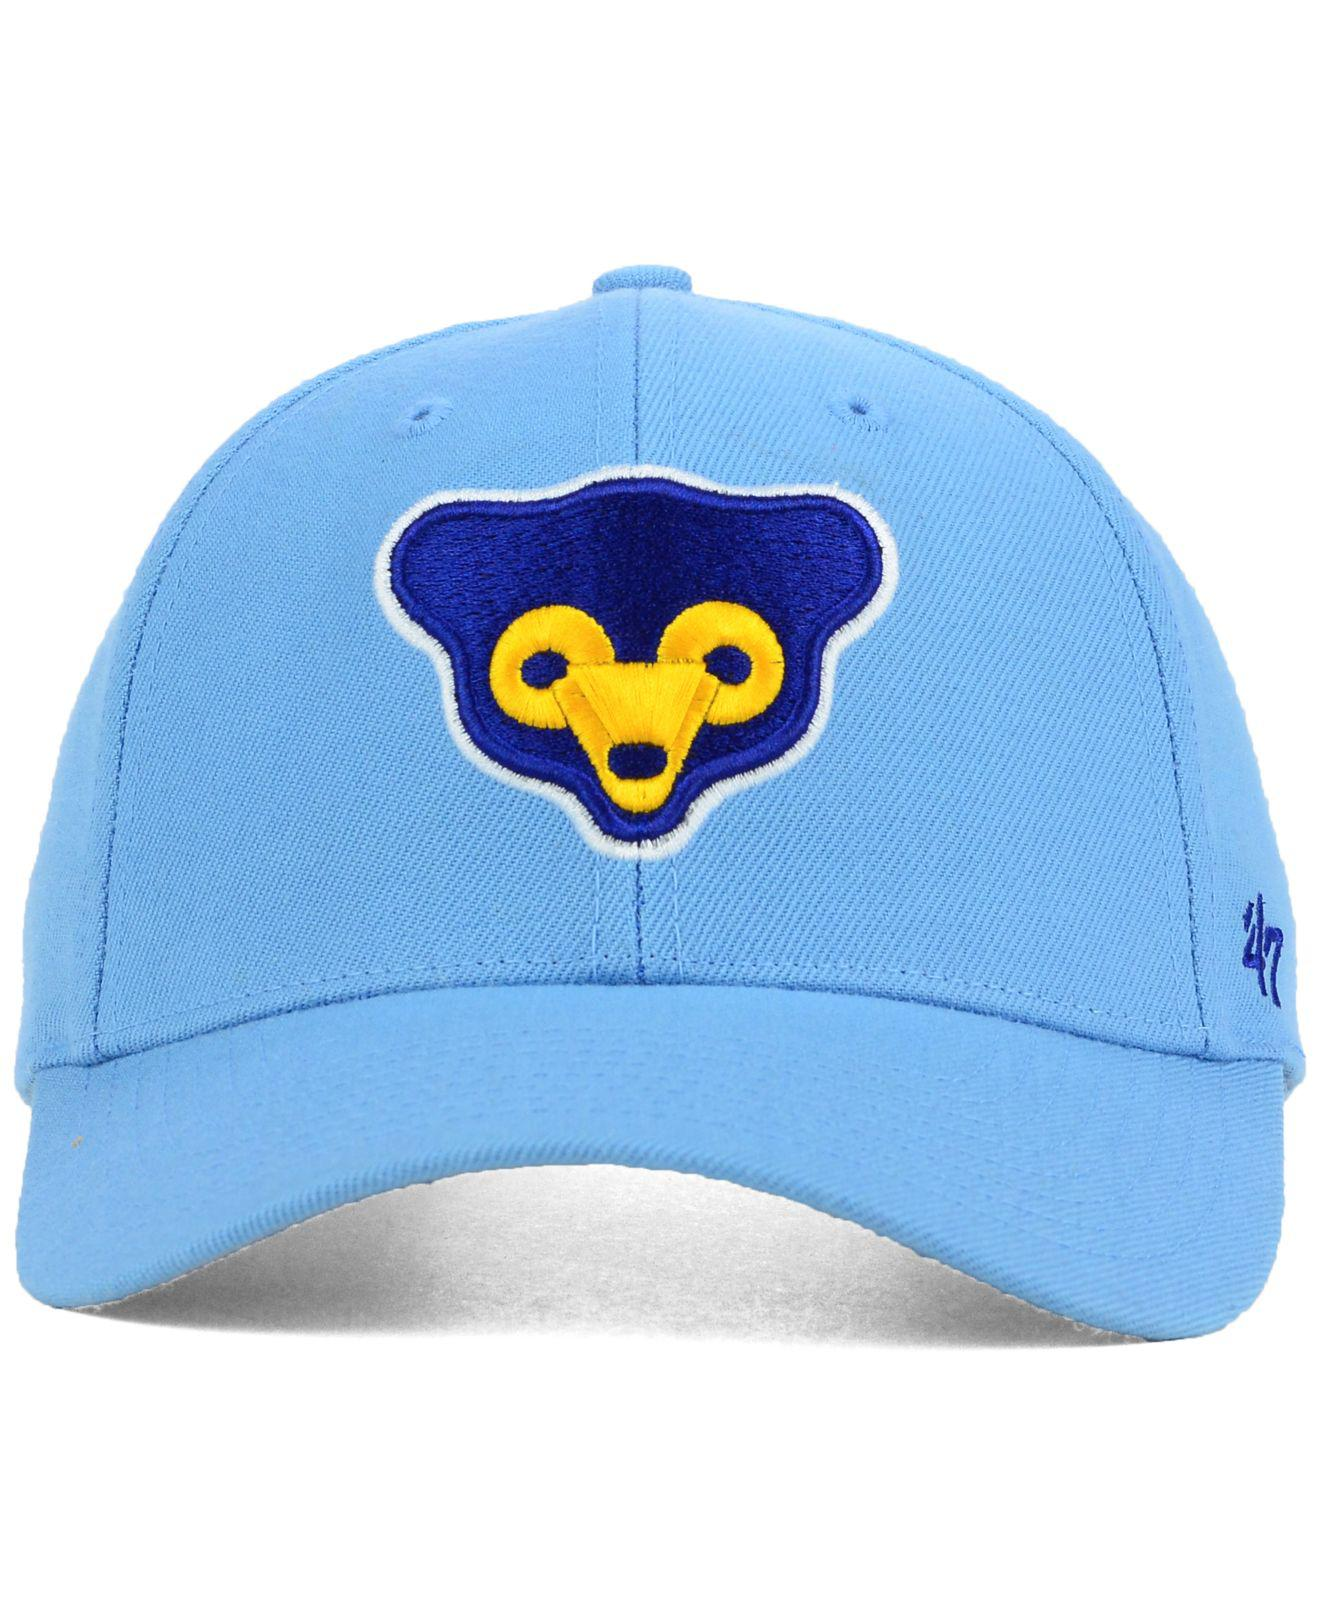 56701251cb2 ... where can i buy lyst 47 brand chicago cubs mvp curved cap in blue for  men